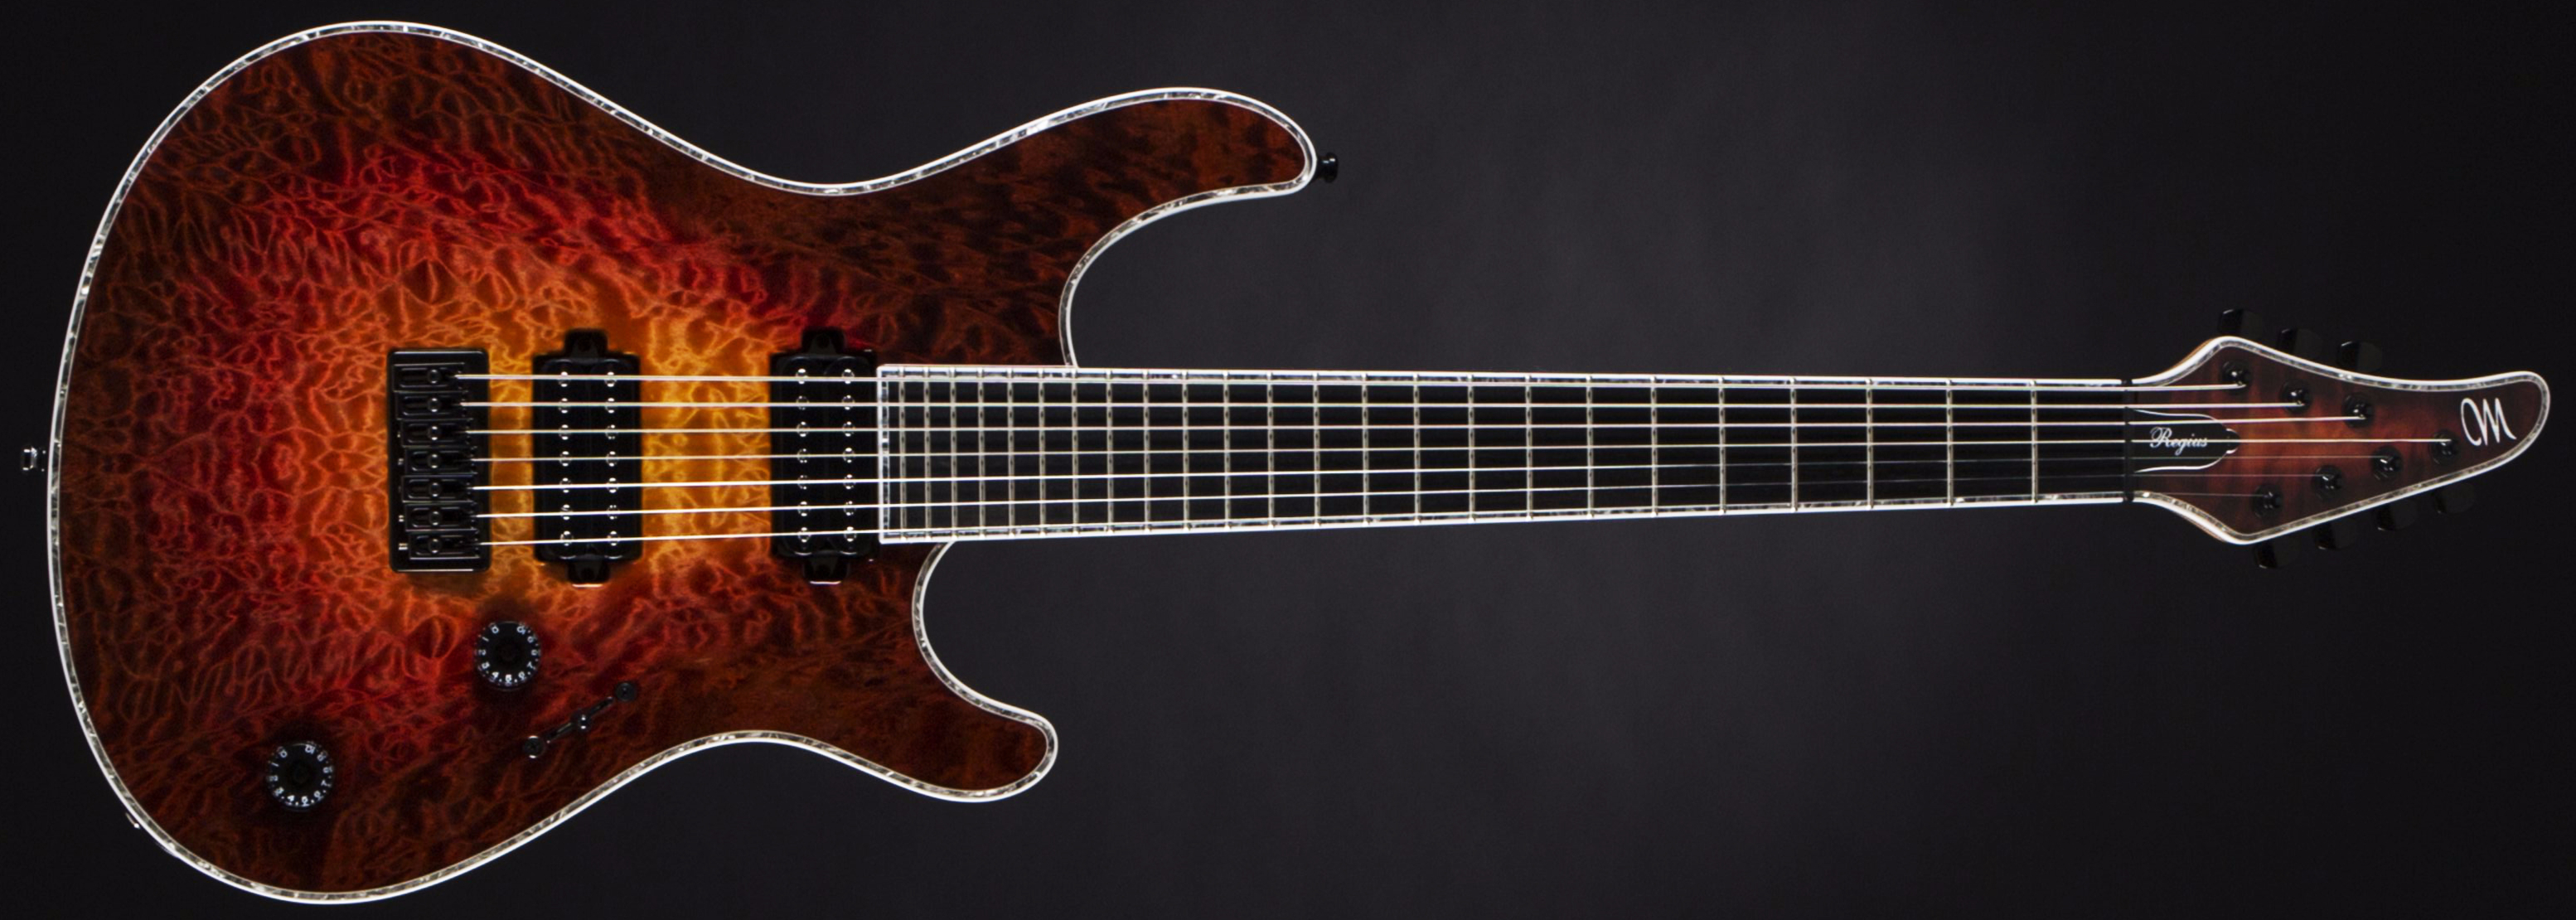 Mayones Regius 7 Quilted Maple Lava Burst Front